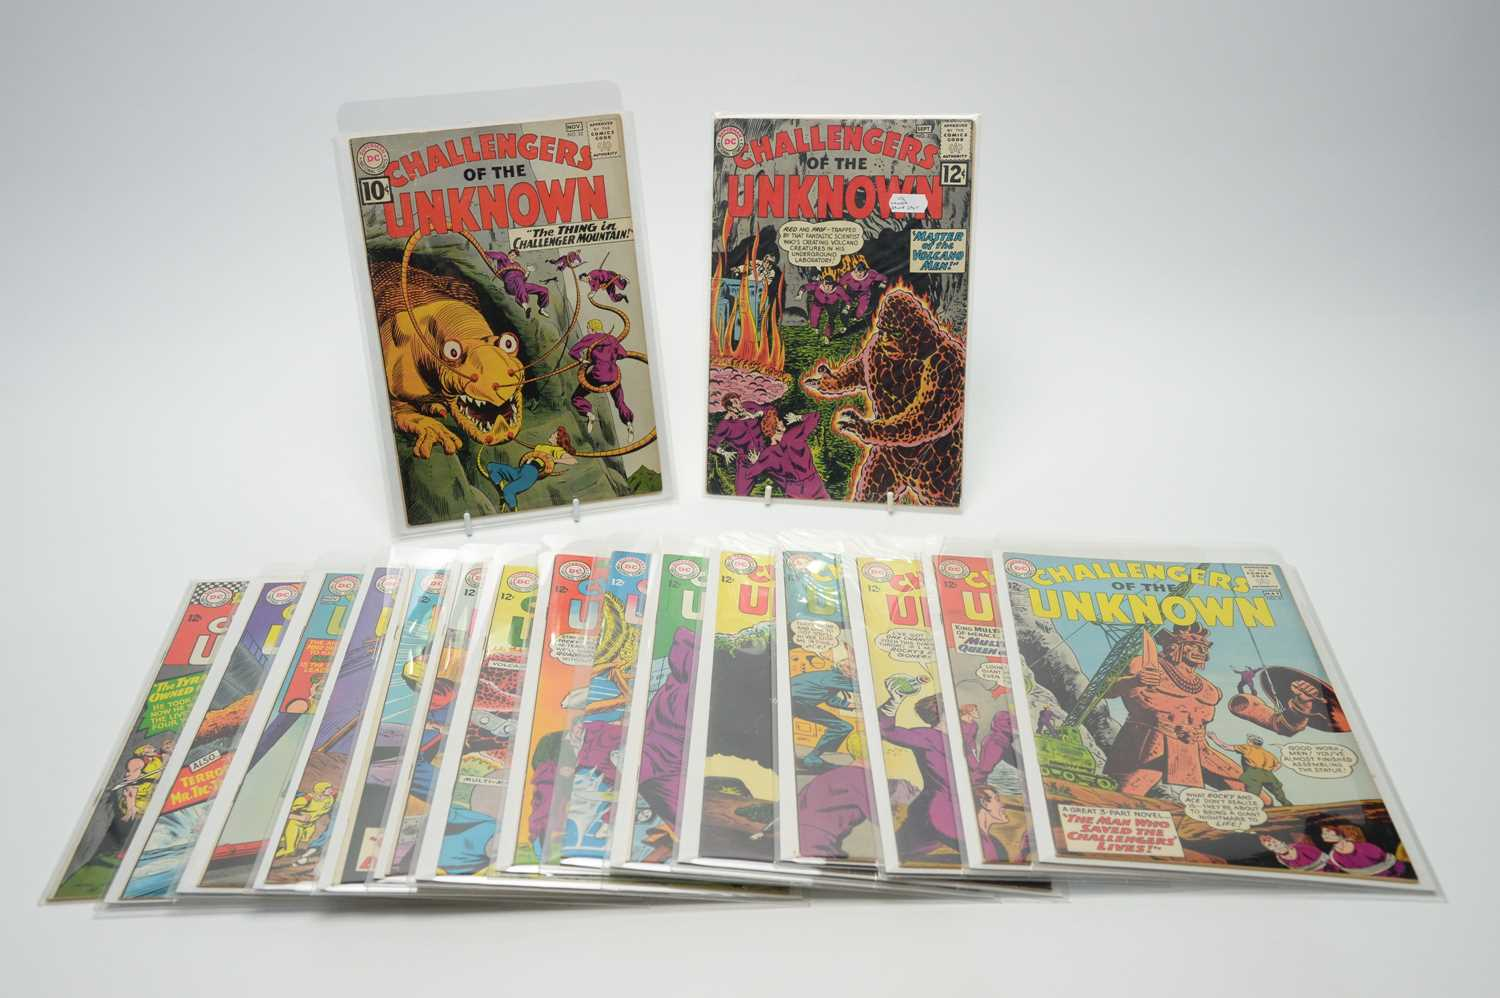 Lot 36 - Challengers of the Unknown by DC.